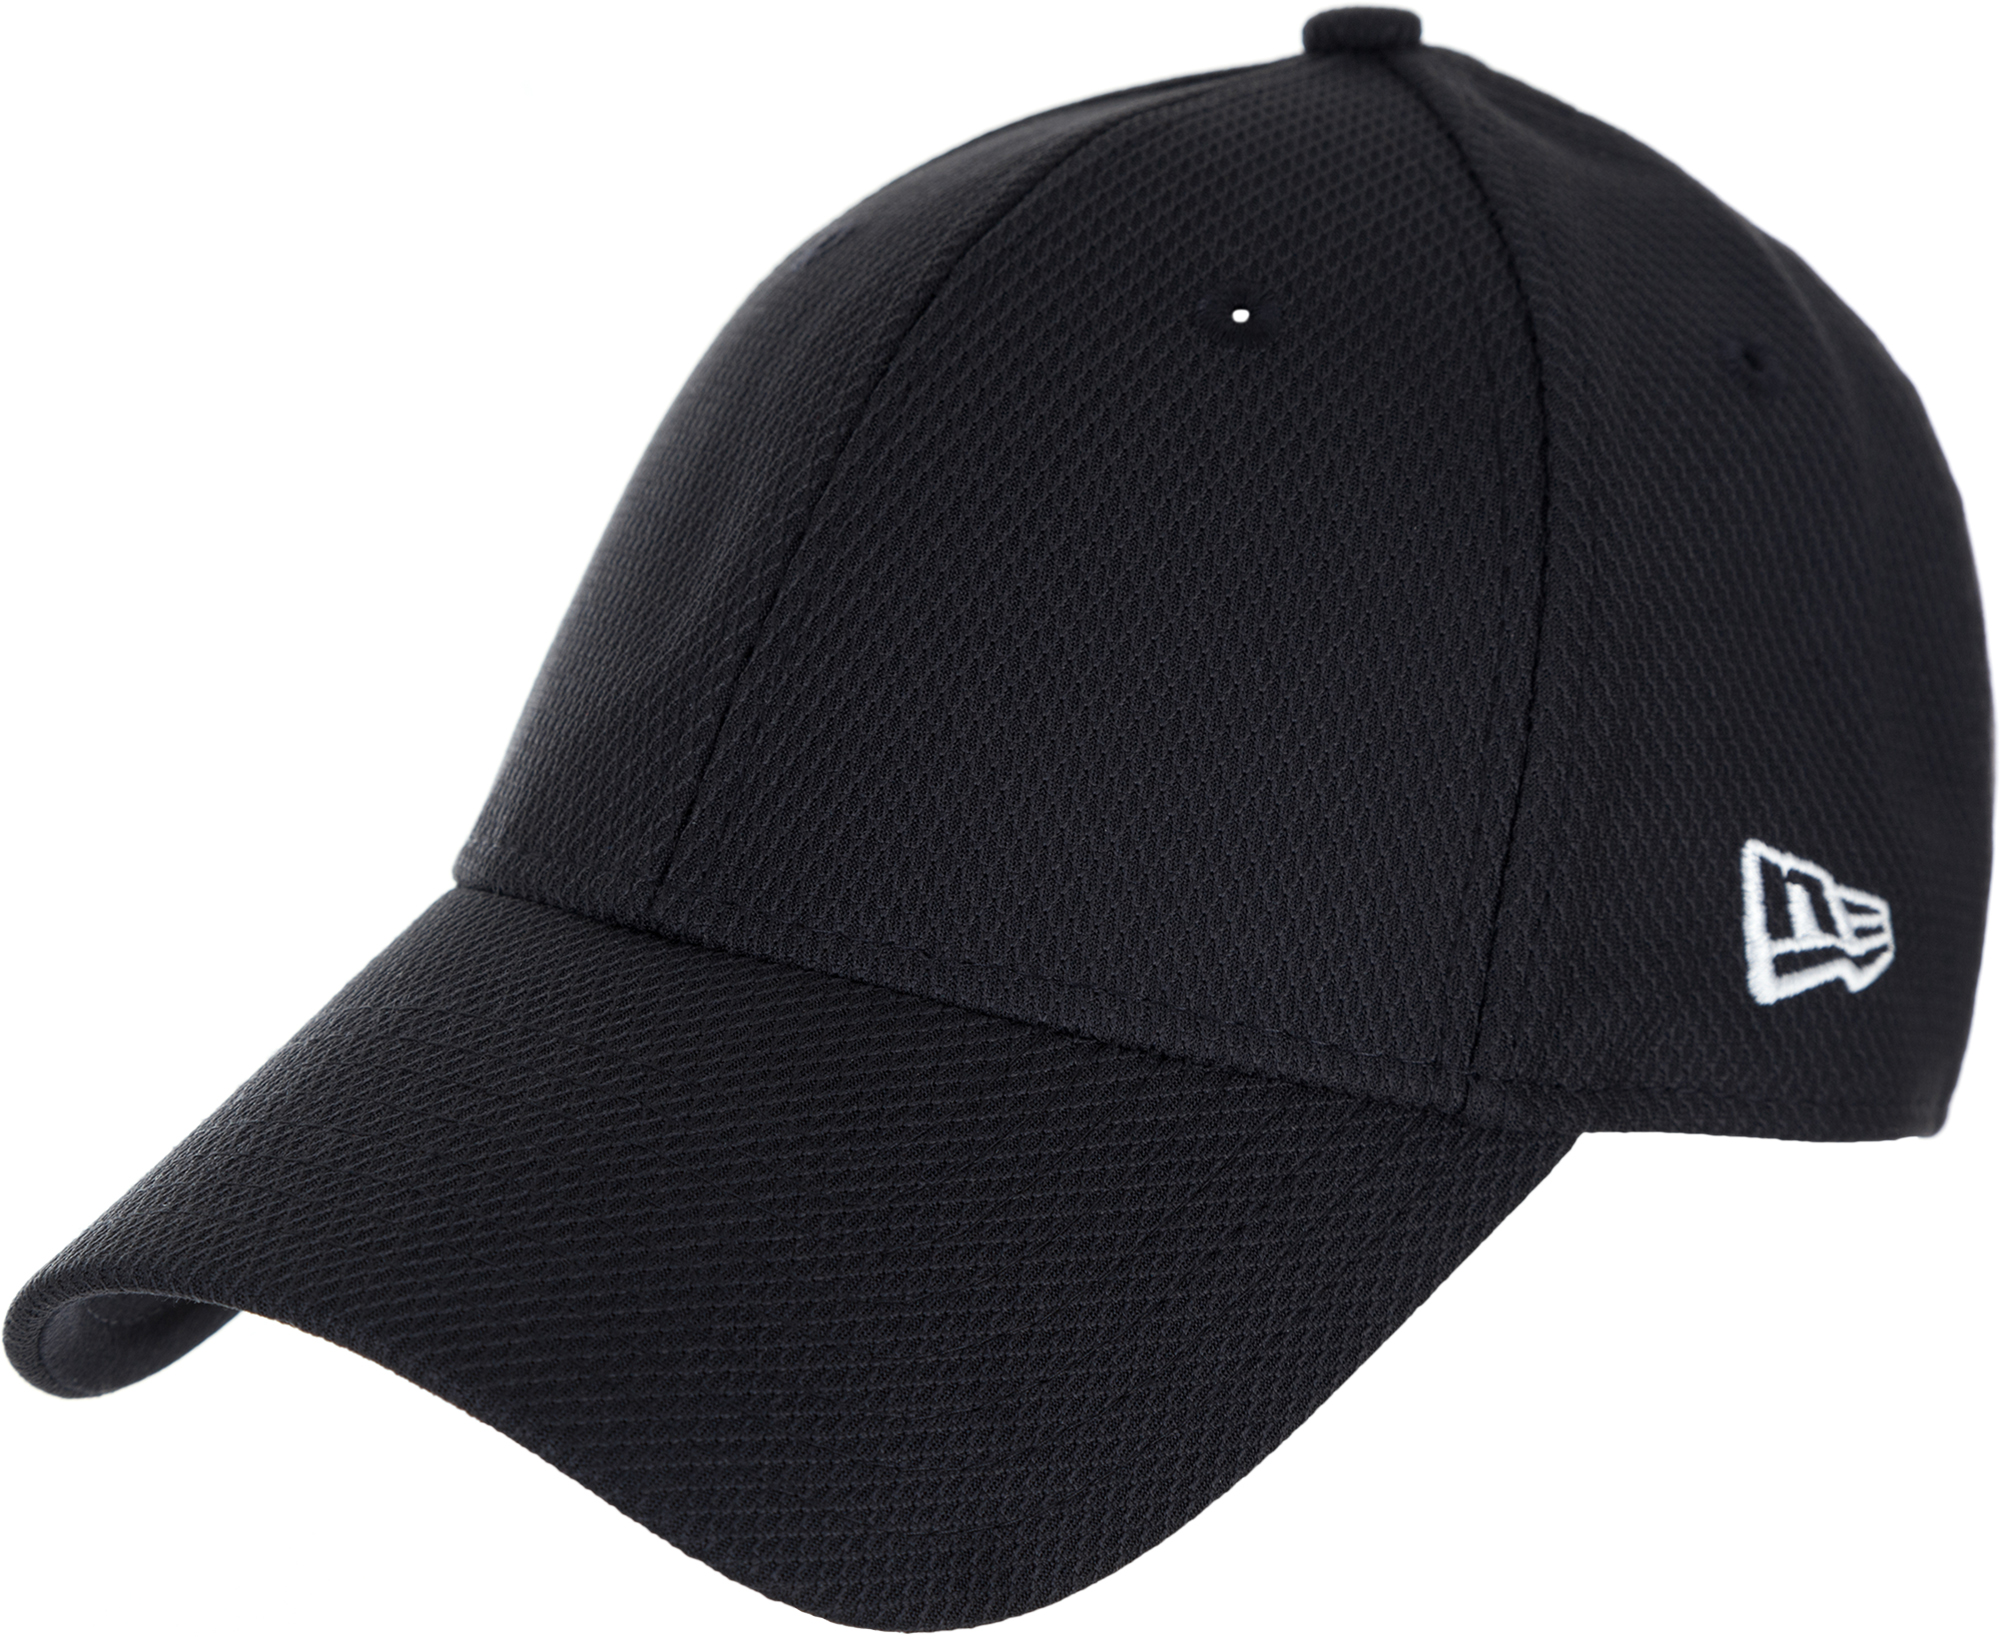 New Era Бейсболка мужская New Era Lic 234 9Forty Diamond